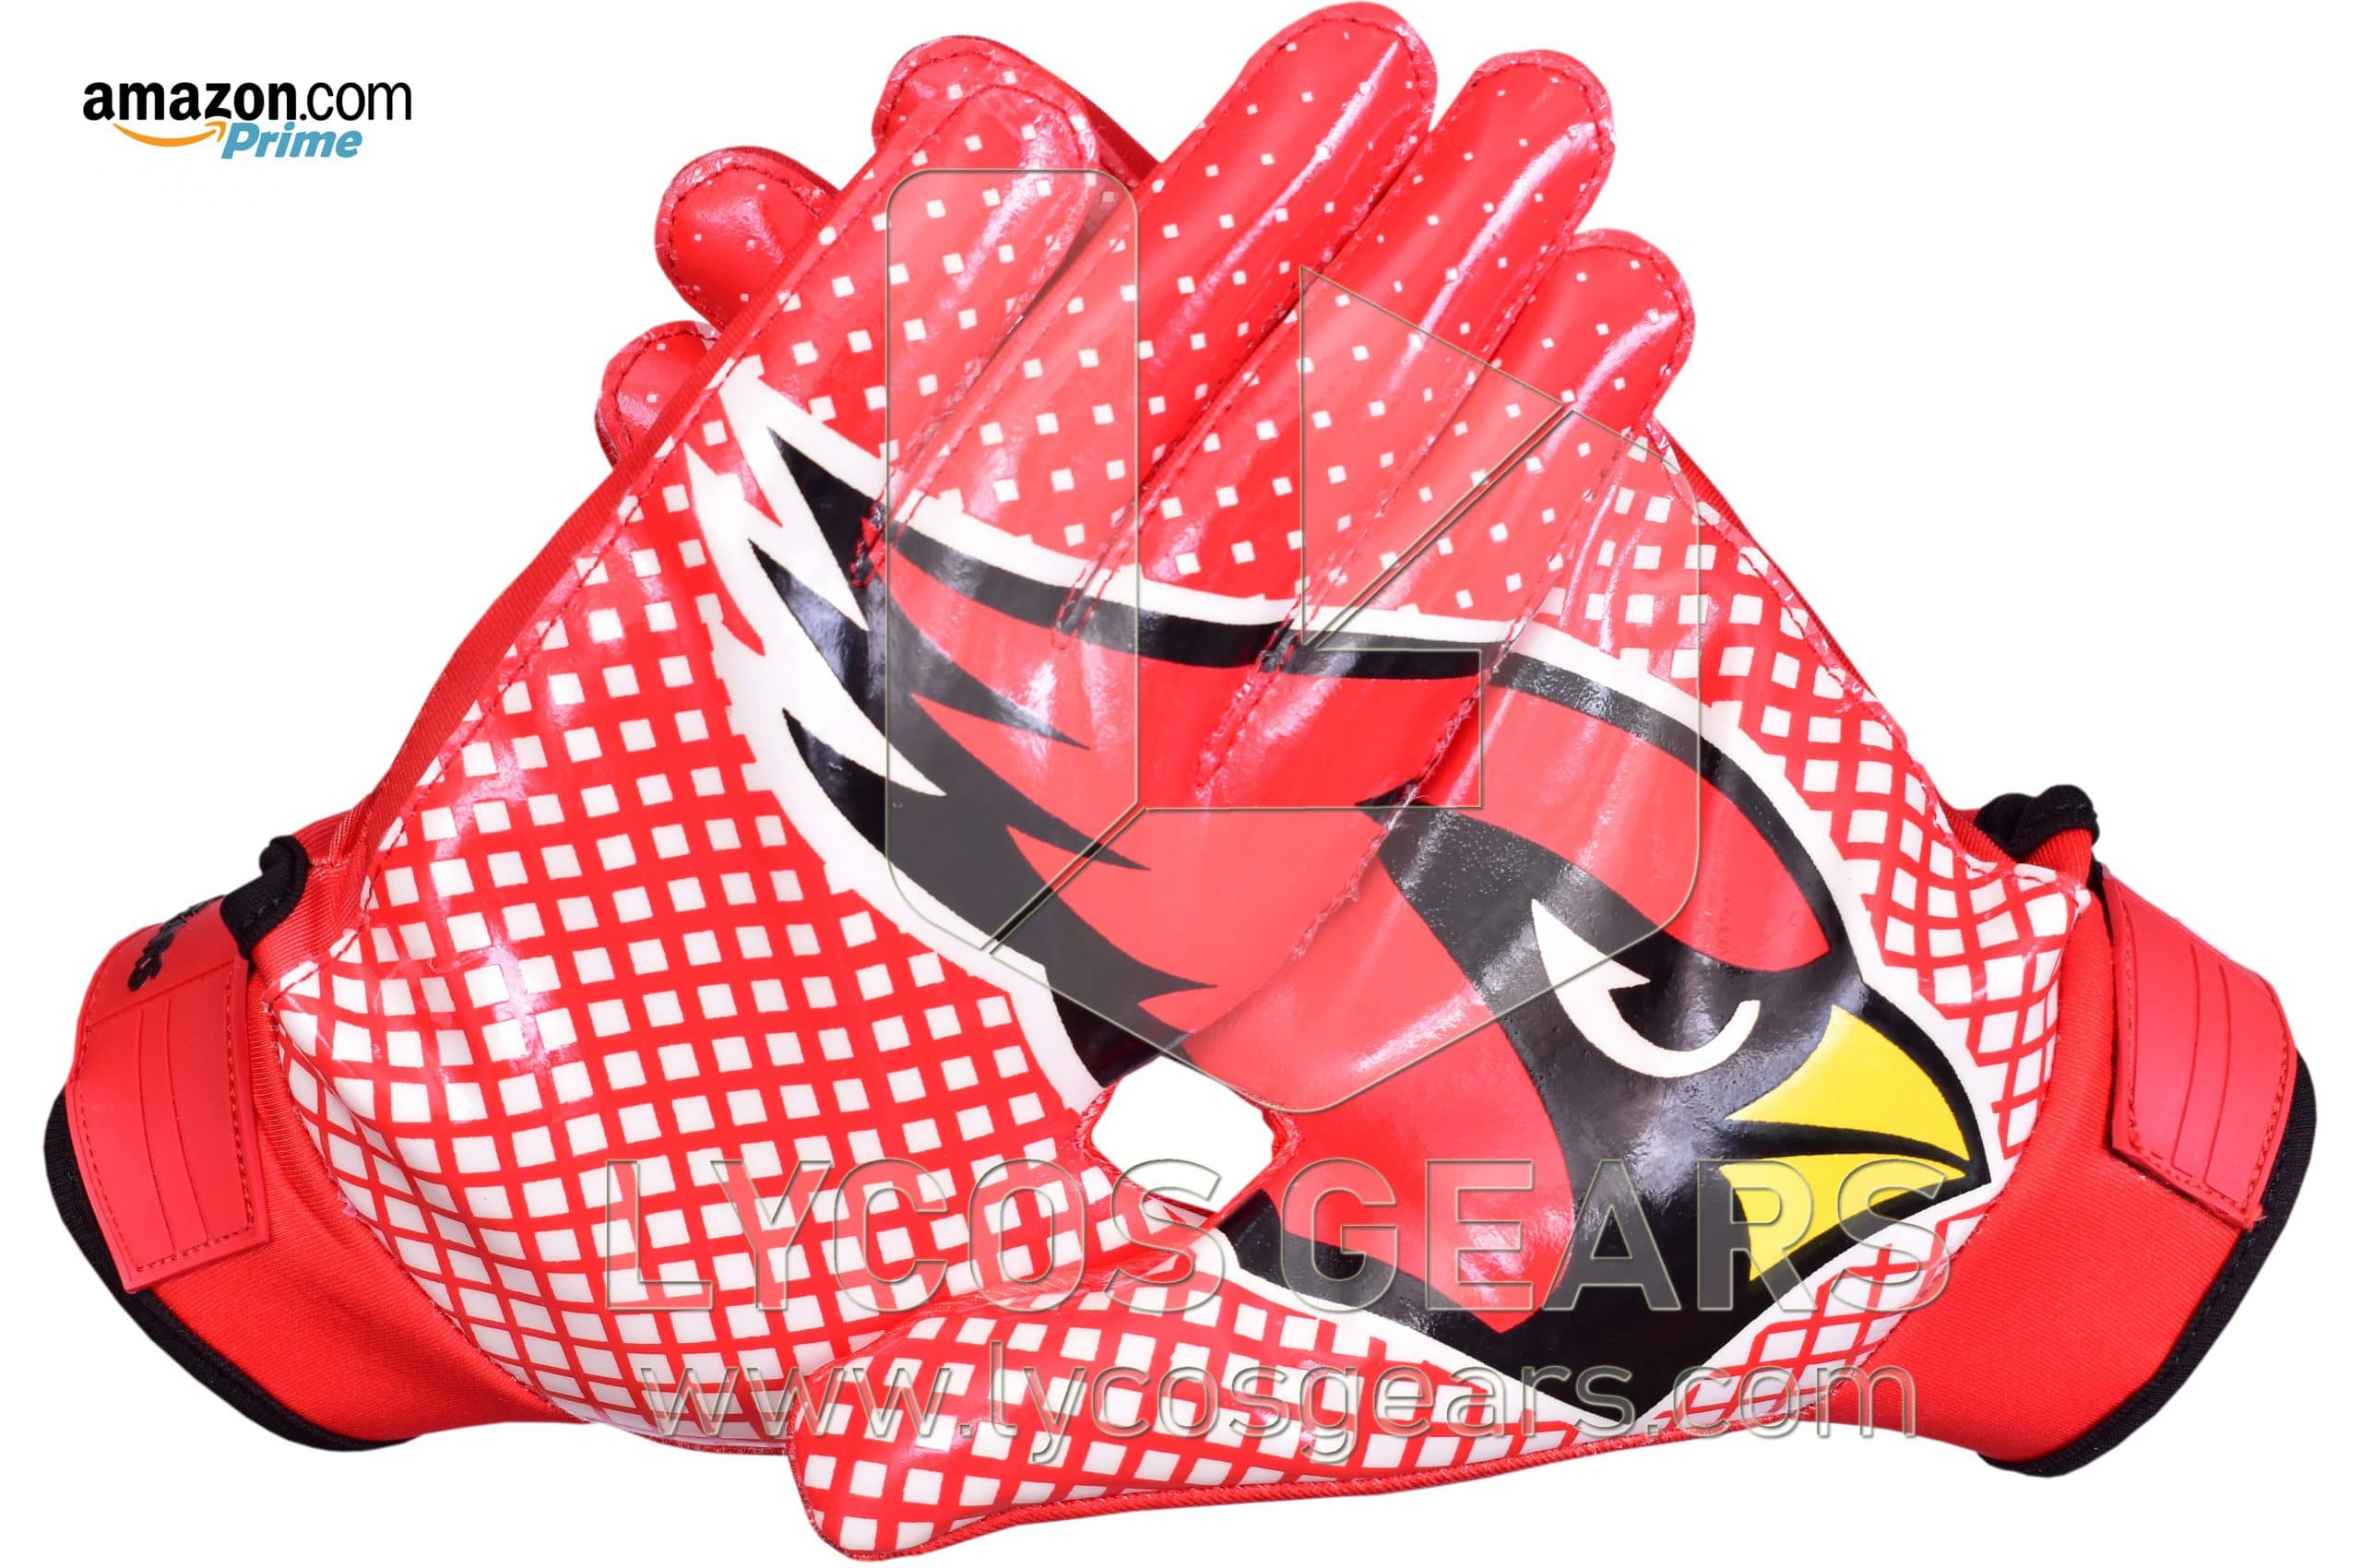 Arizona Cardinals Football Gloves Silicon Grip Receiver Gloves Lycos Gears